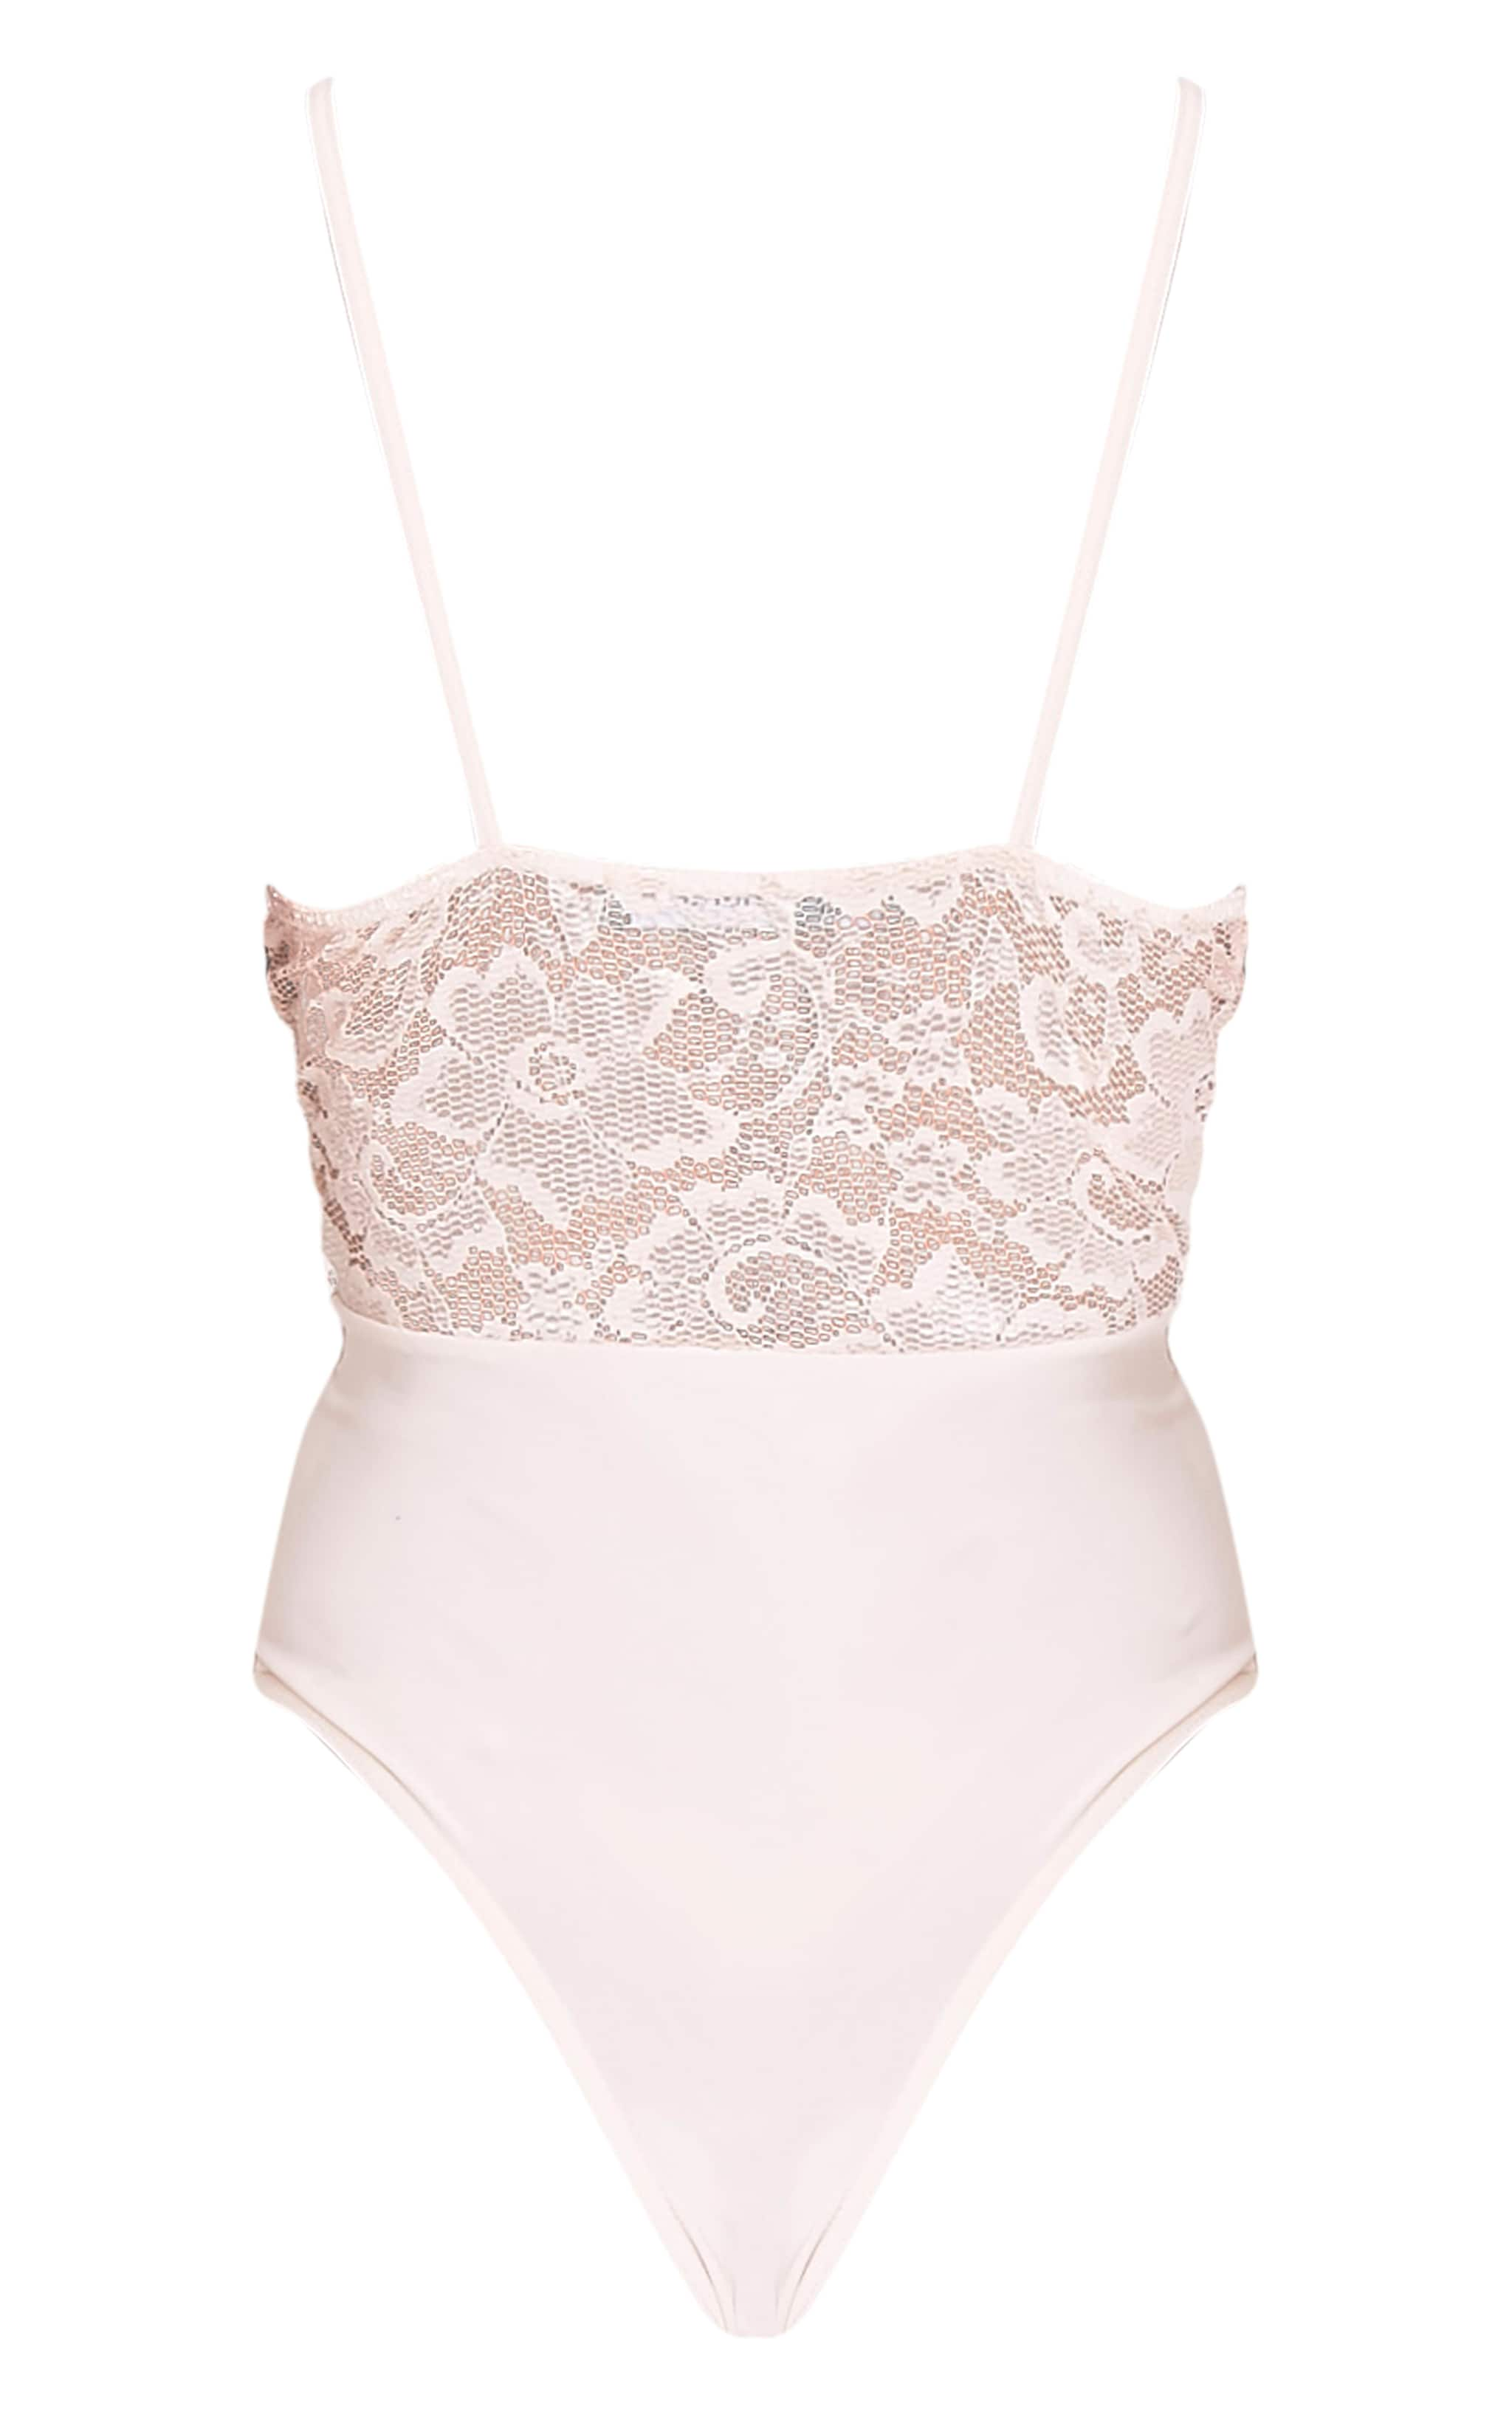 Angeline Nude Deep Plunge Lace Thong Bodysuit 4